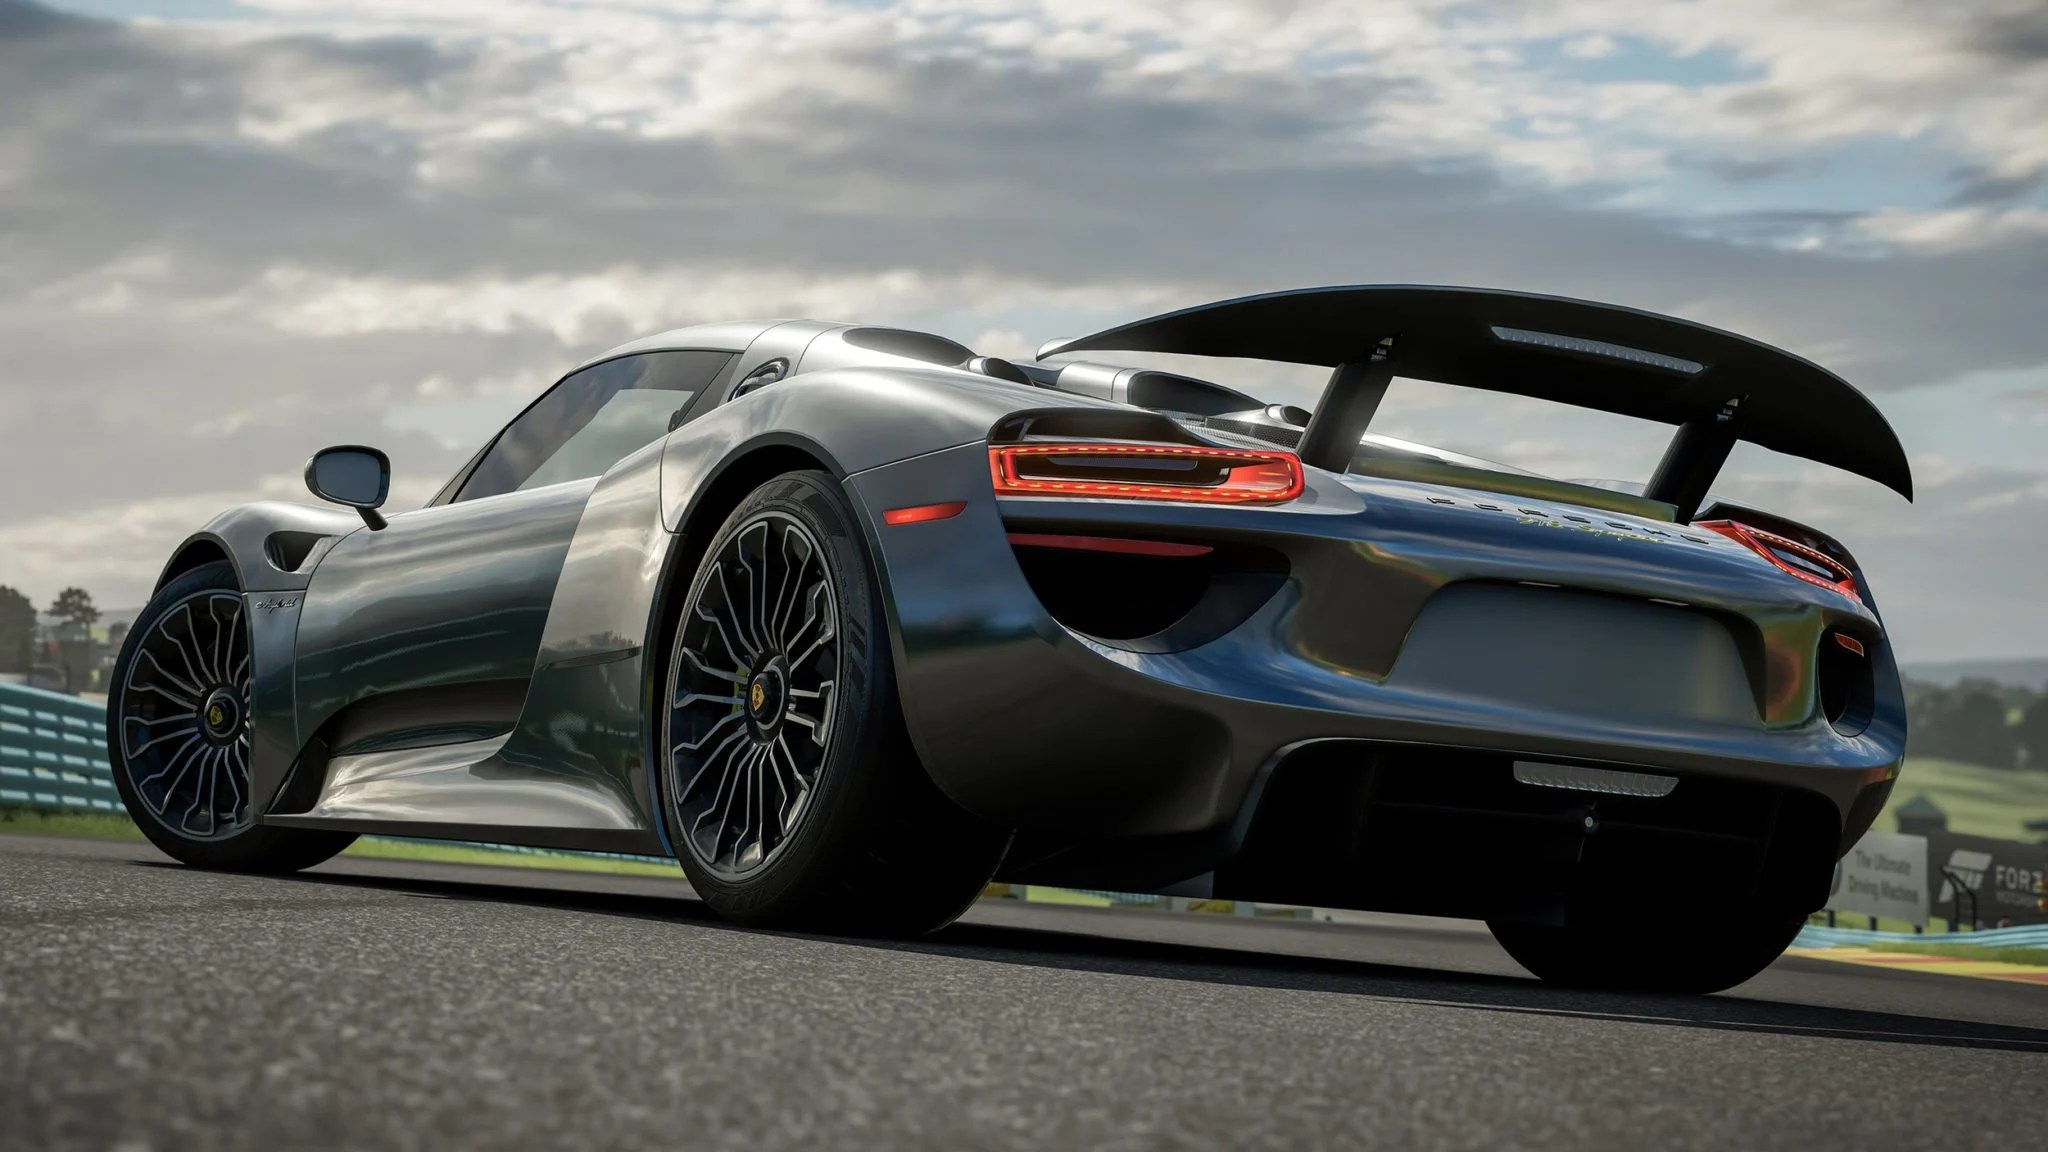 Project Cars 2 Cover Wallpaper The Always Up To Date Forza Motorsport 7 Car List